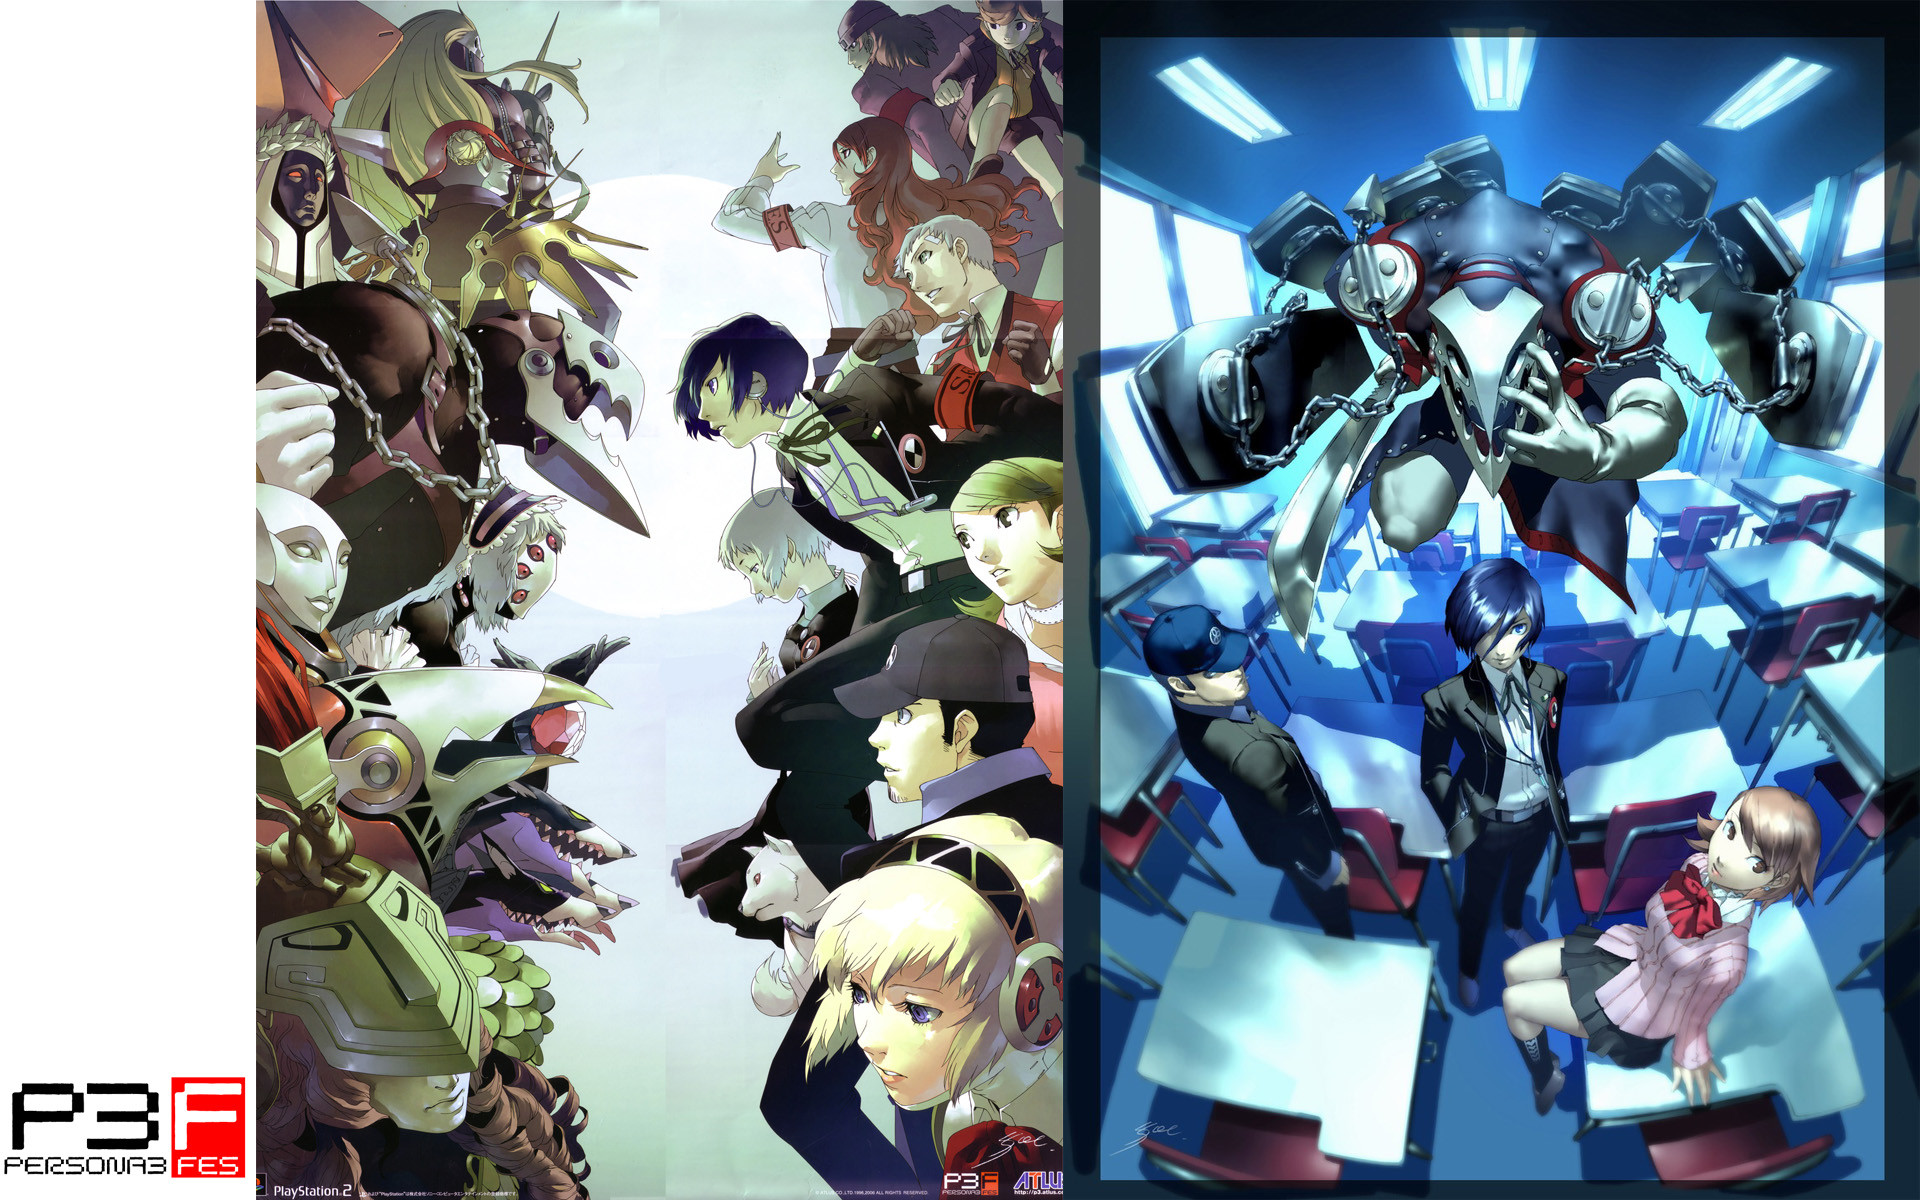 Res: 1920x1200, Persona 3 Fes Image.